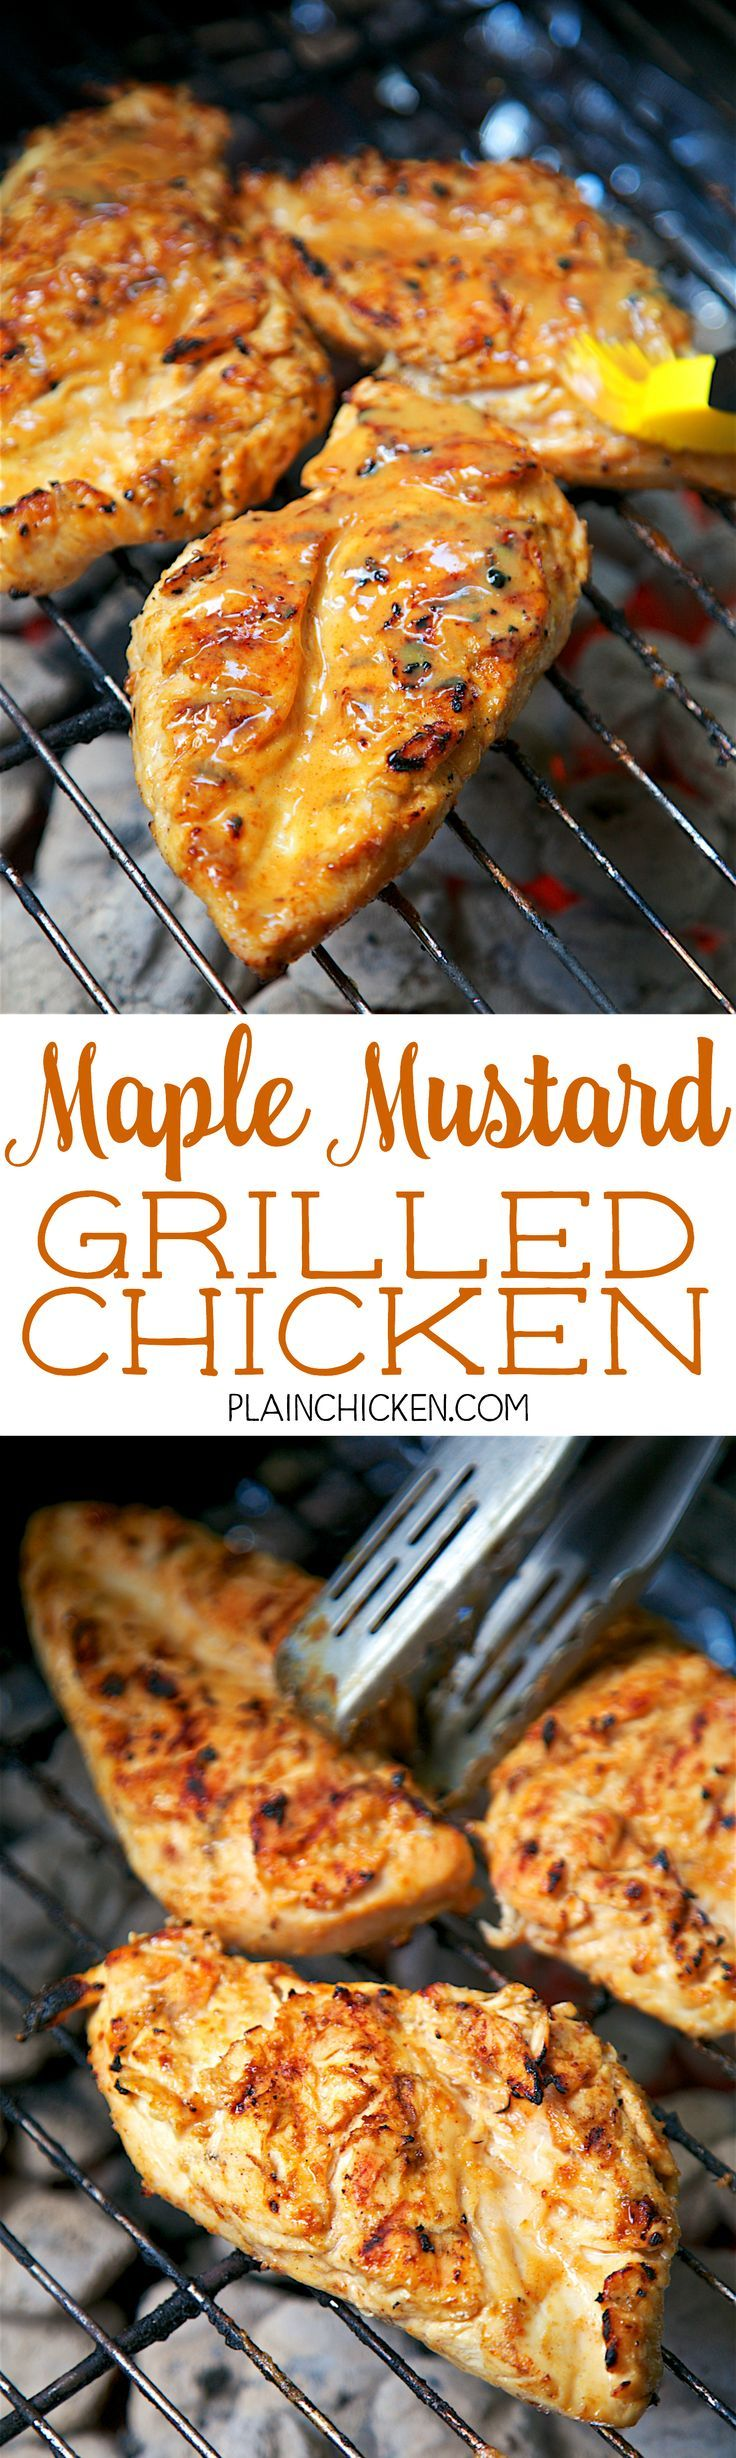 Maple Mustard Grilled Chicken - so simple! Only 6 ingredients - chicken, maple, dijon mustard, lemon juice, paprika and salt. Let the chicken marinate in the fridge and then grill. We LOVE this chicken. My husband asks me to make this at least once a week!